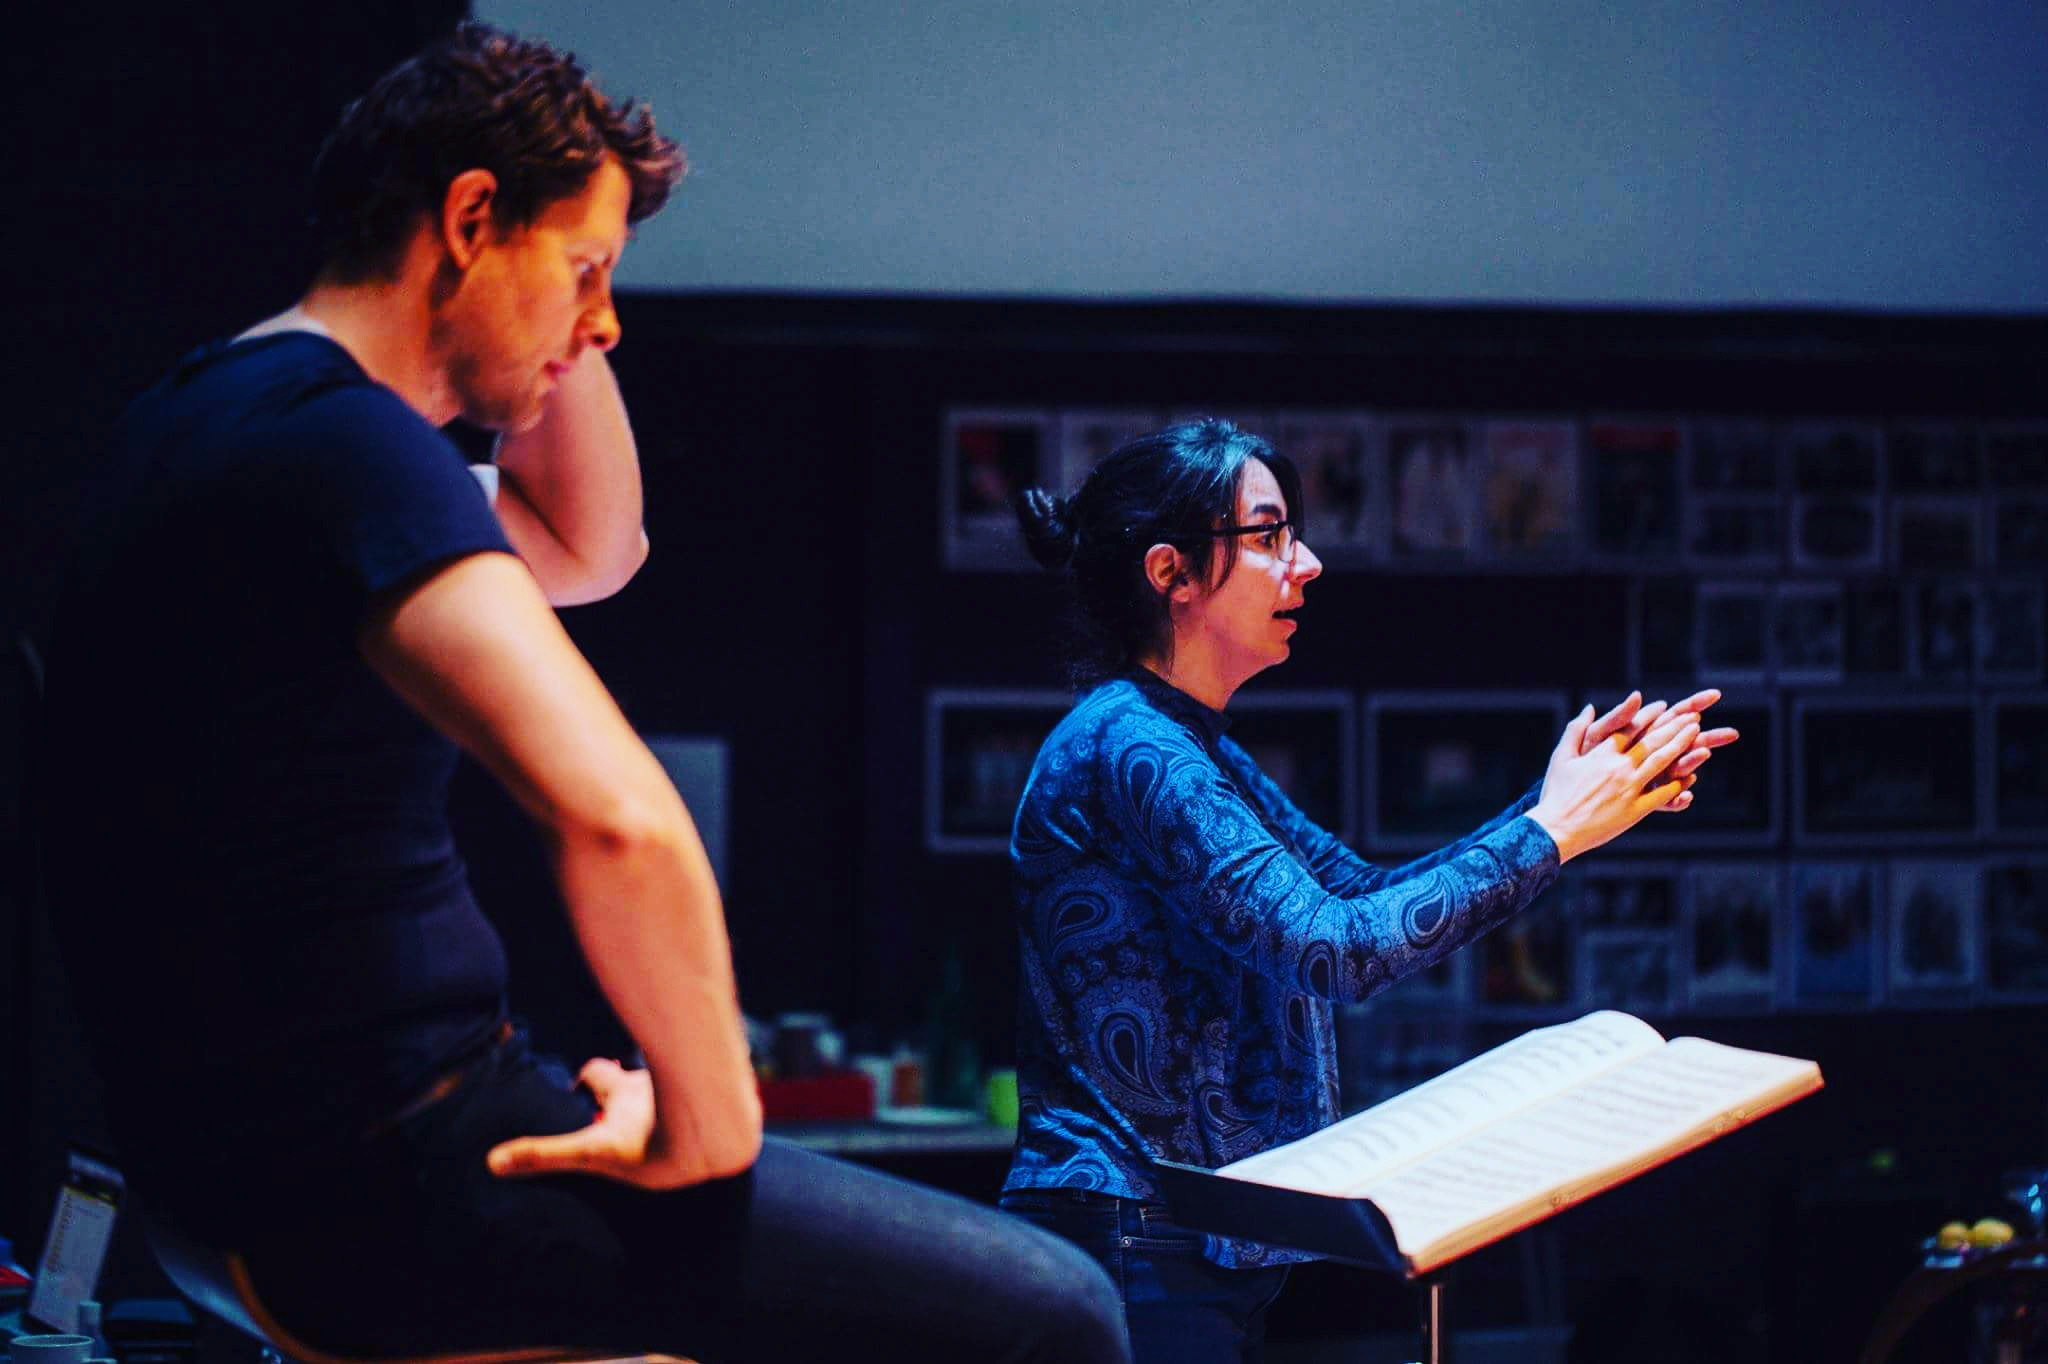 With director, Adele Thomas working on Così fan tutte at Northern Ireland Opera